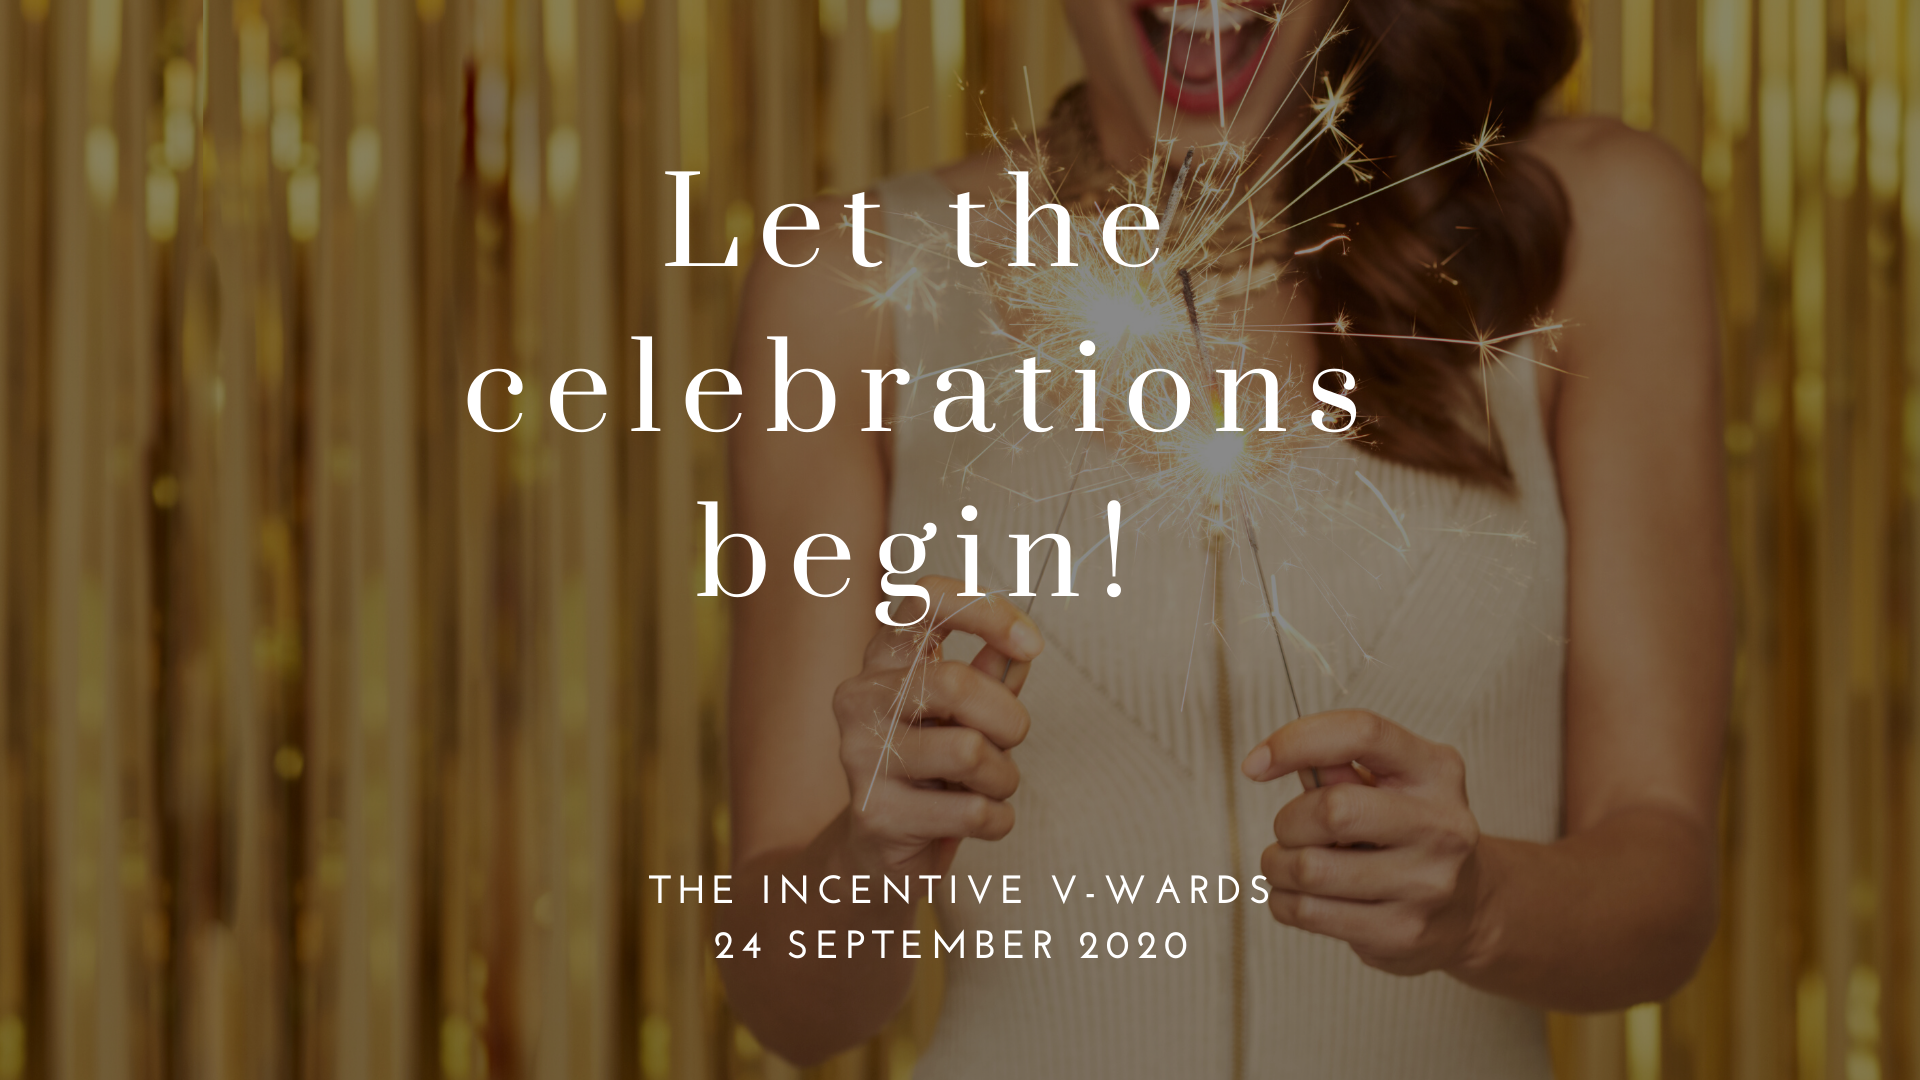 The Incentive Awards are going online